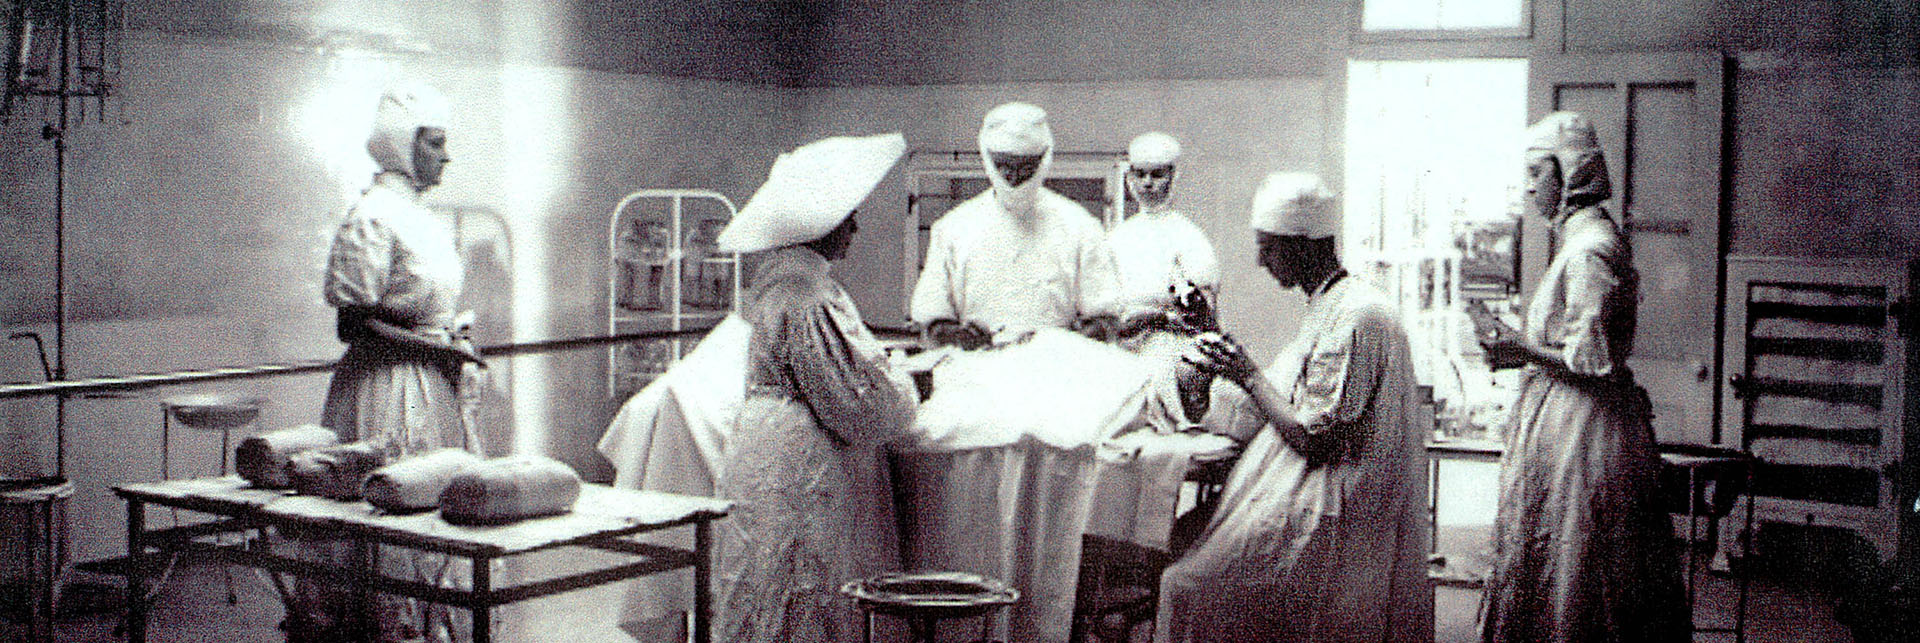 Operating room, 1908